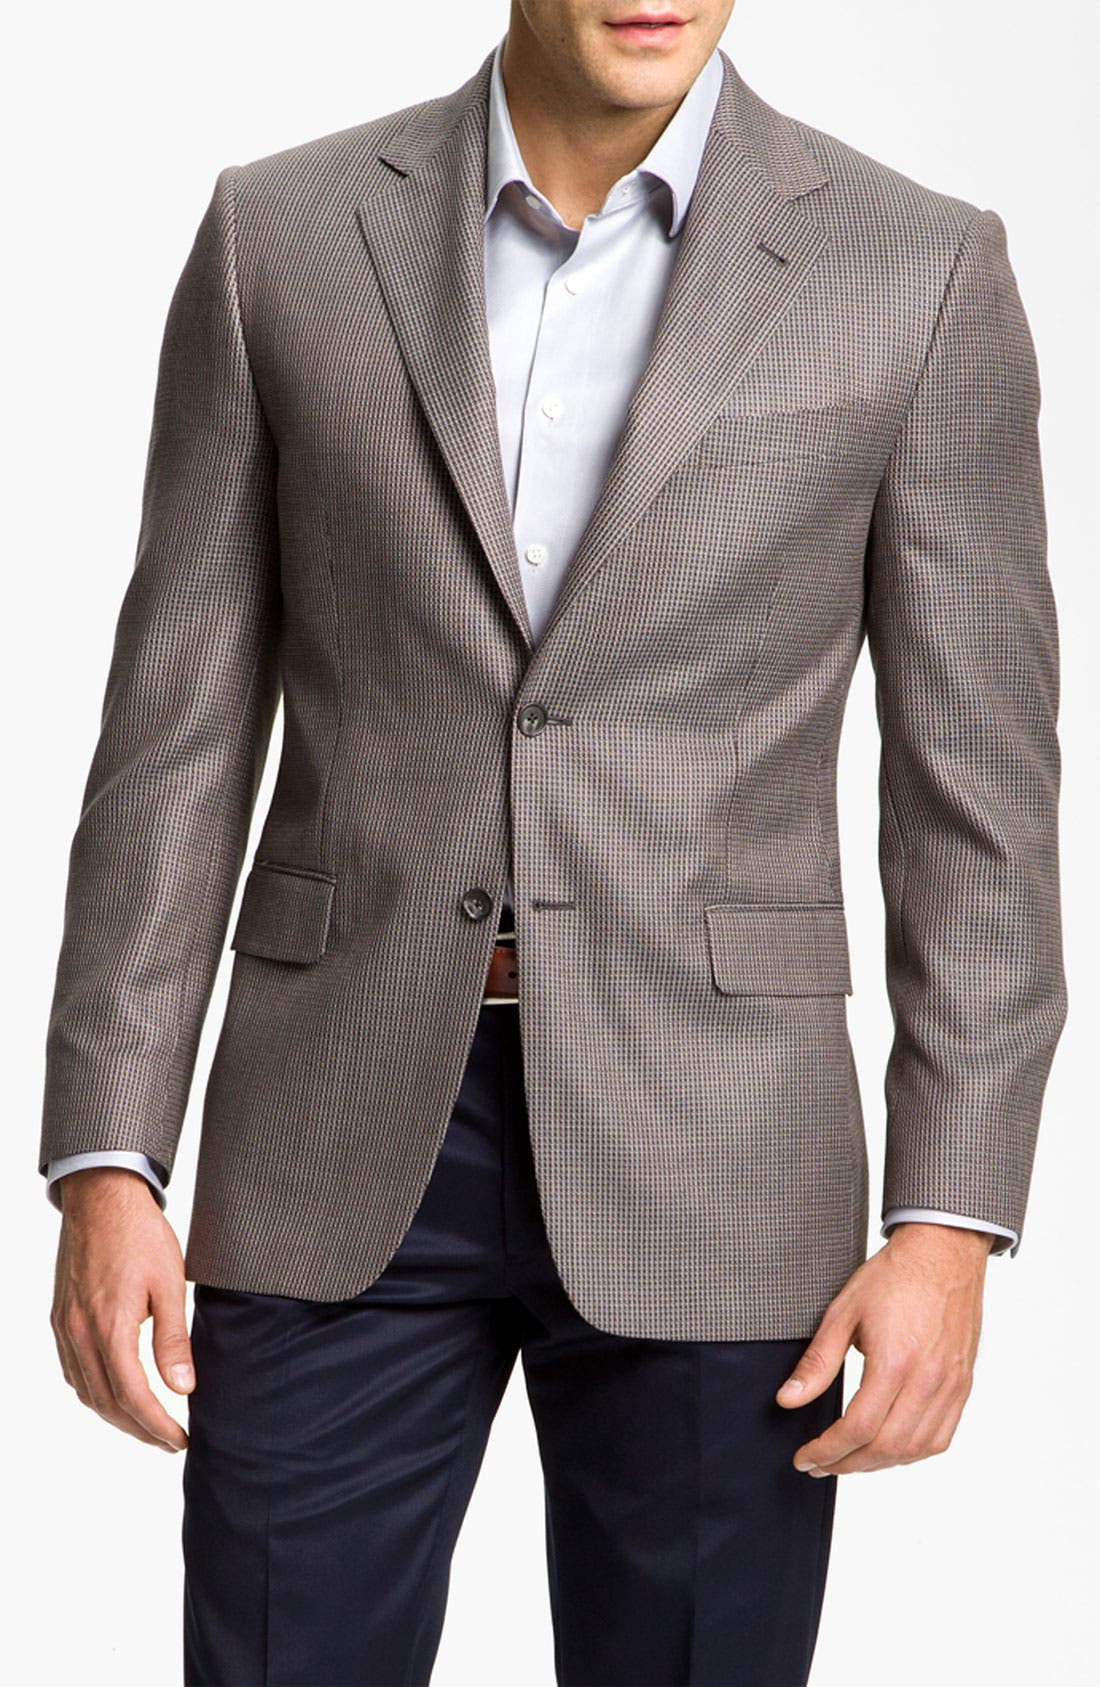 Alternate Image 1 Selected - Joseph Abboud 'Signature Silver' Sportcoat